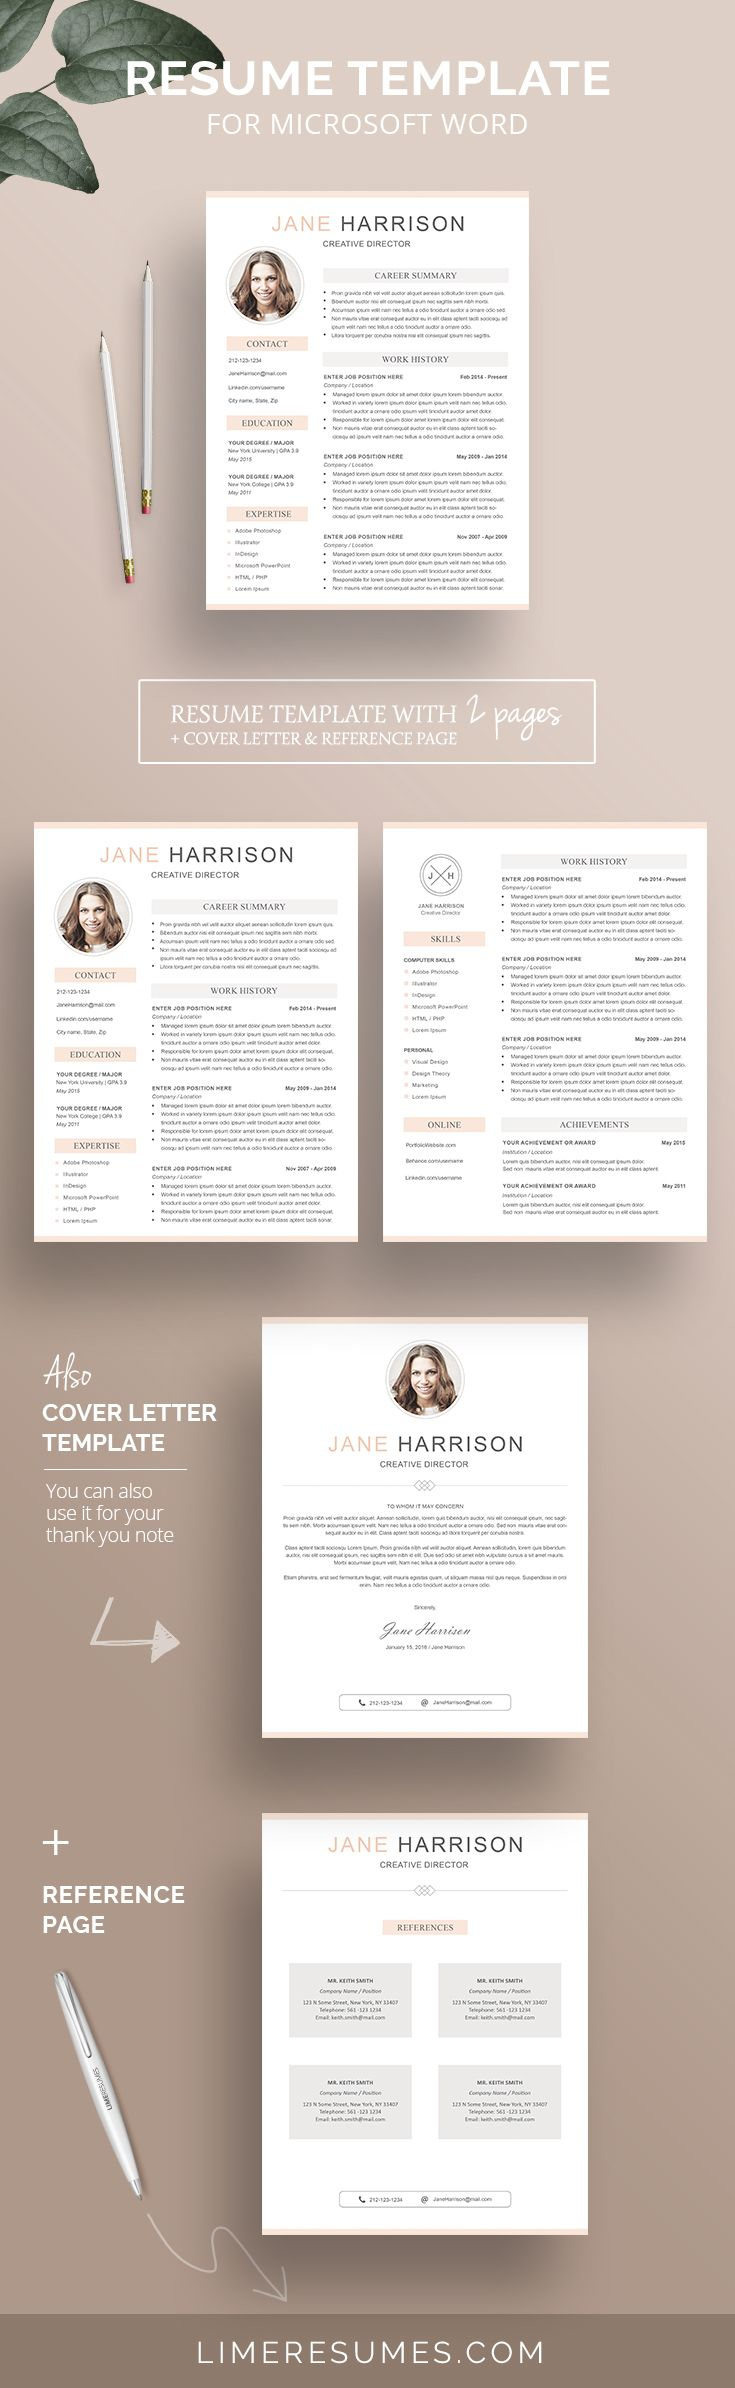 Cv Templates Design%0A Modern resume template with photo  Easy to edit with Word  Comes with  matching cover